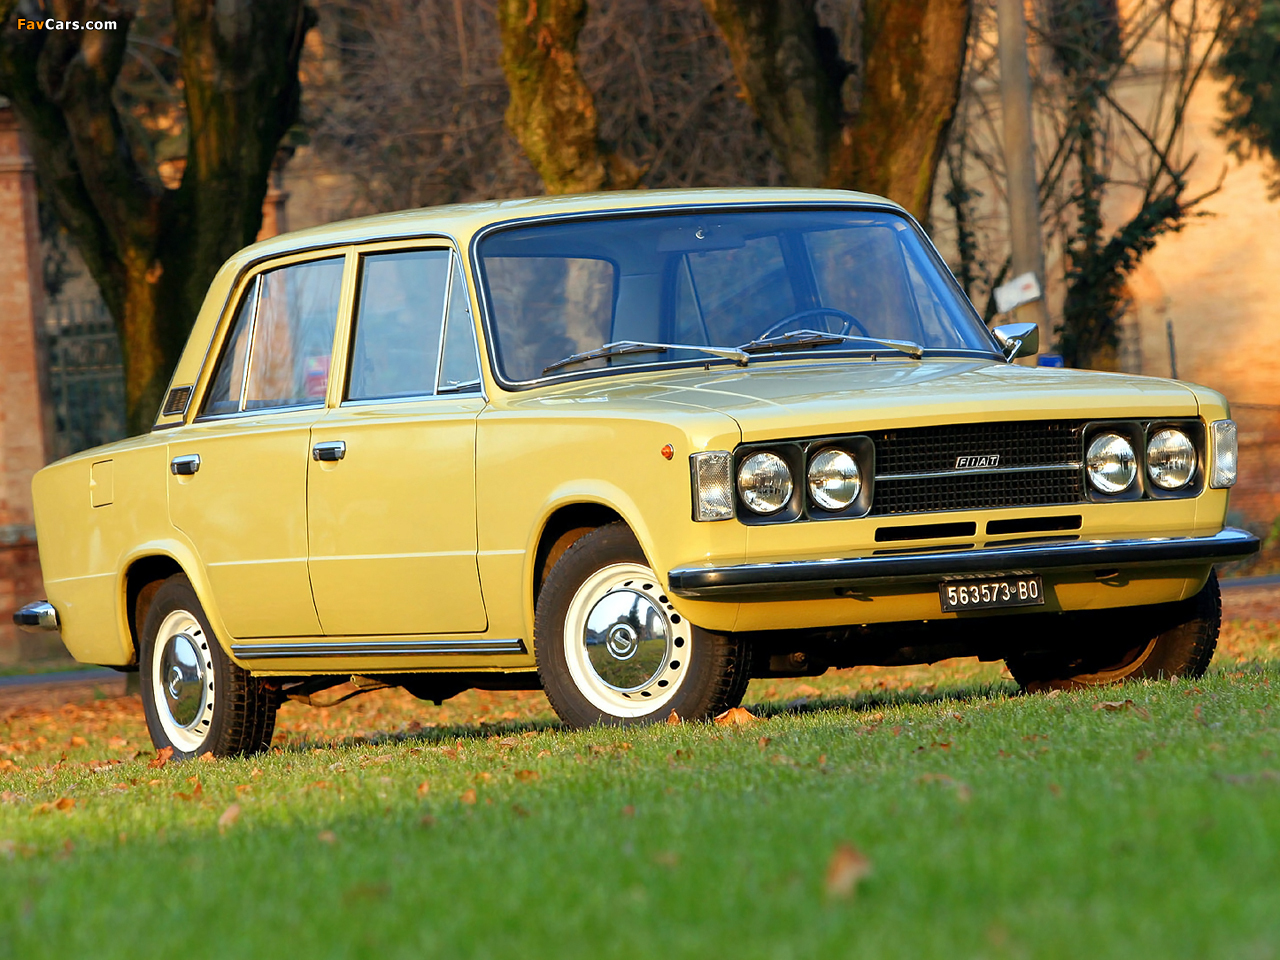 fiat 124 it with Fiat 124 Special 1972 74 Images 284055 on 2017 Fiat Freemont Release Date likewise Murat124 Tr03 together with Fiat 124 Spider Mazda Mx5 Miata  parison additionally Volkswagen Passat 4 Motion also 124 Spider.